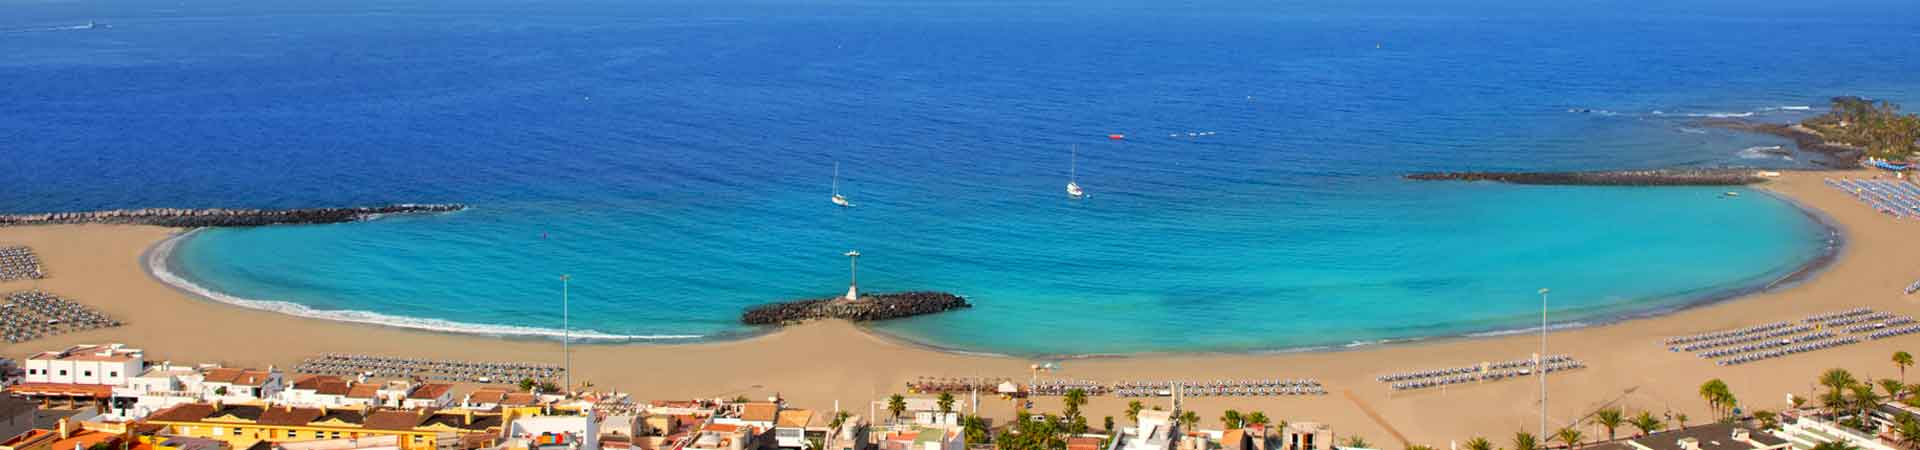 https://www.goodmorningtenerife.com/wp-content/uploads/2016/07/01_slide_beaches-1920x450-good-mrning-tenerife.jpg